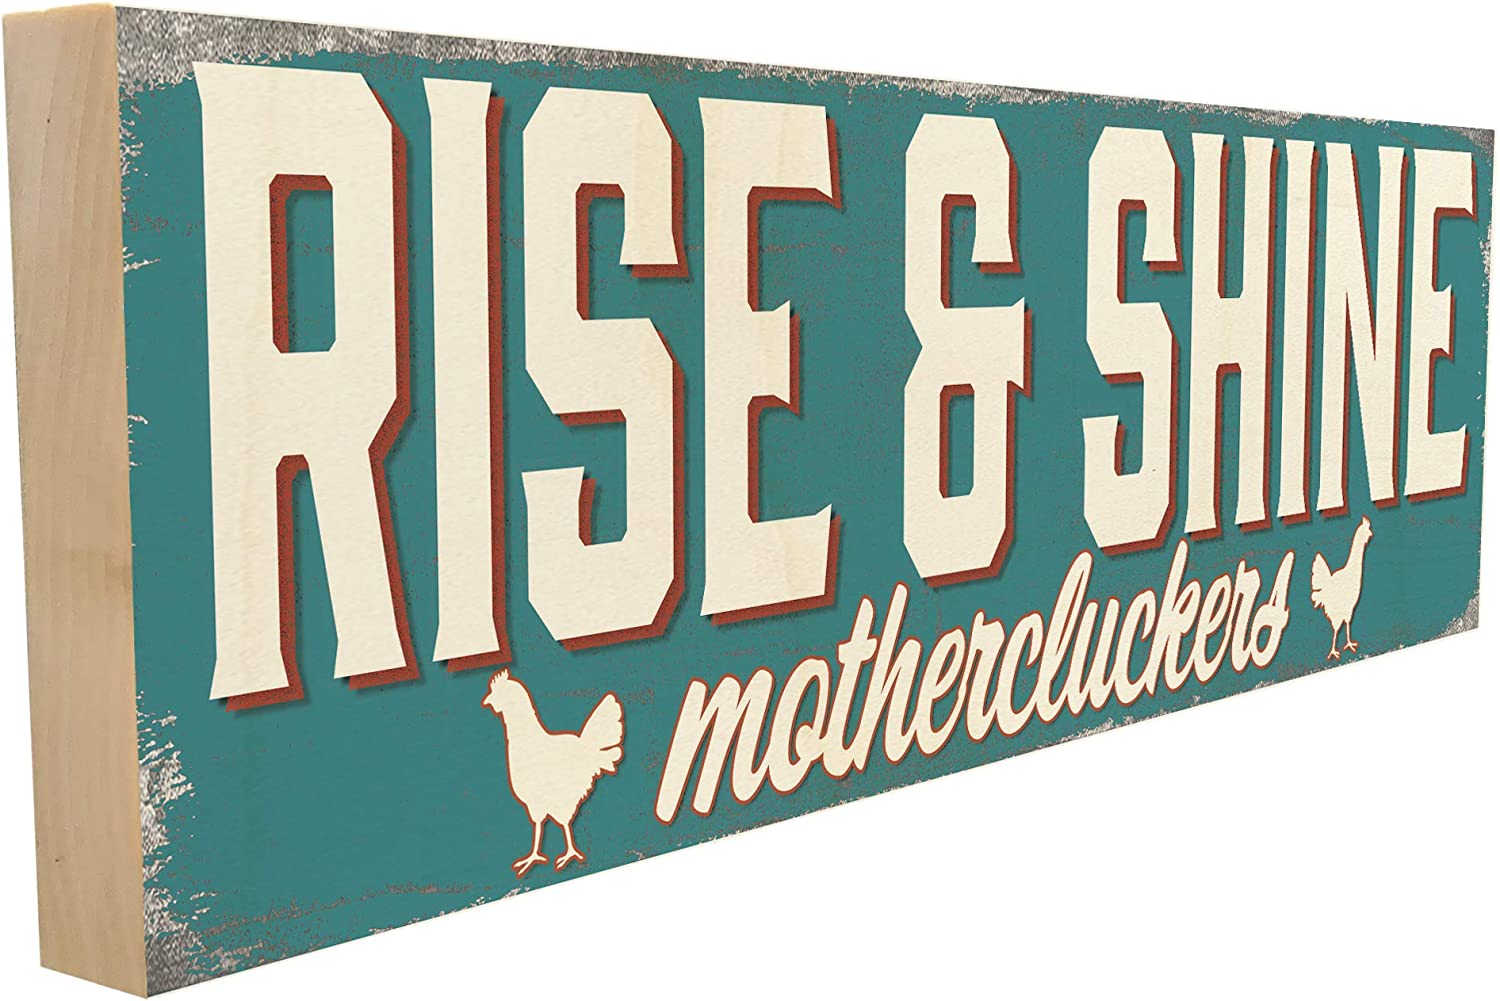 Rise and Shine Mother Cluckers. Hand-Crafted in Tennessee, This Custom Wood Block Sign Measures 4X12 Inches. an Authentic, American Made Gift for Family or Friend.